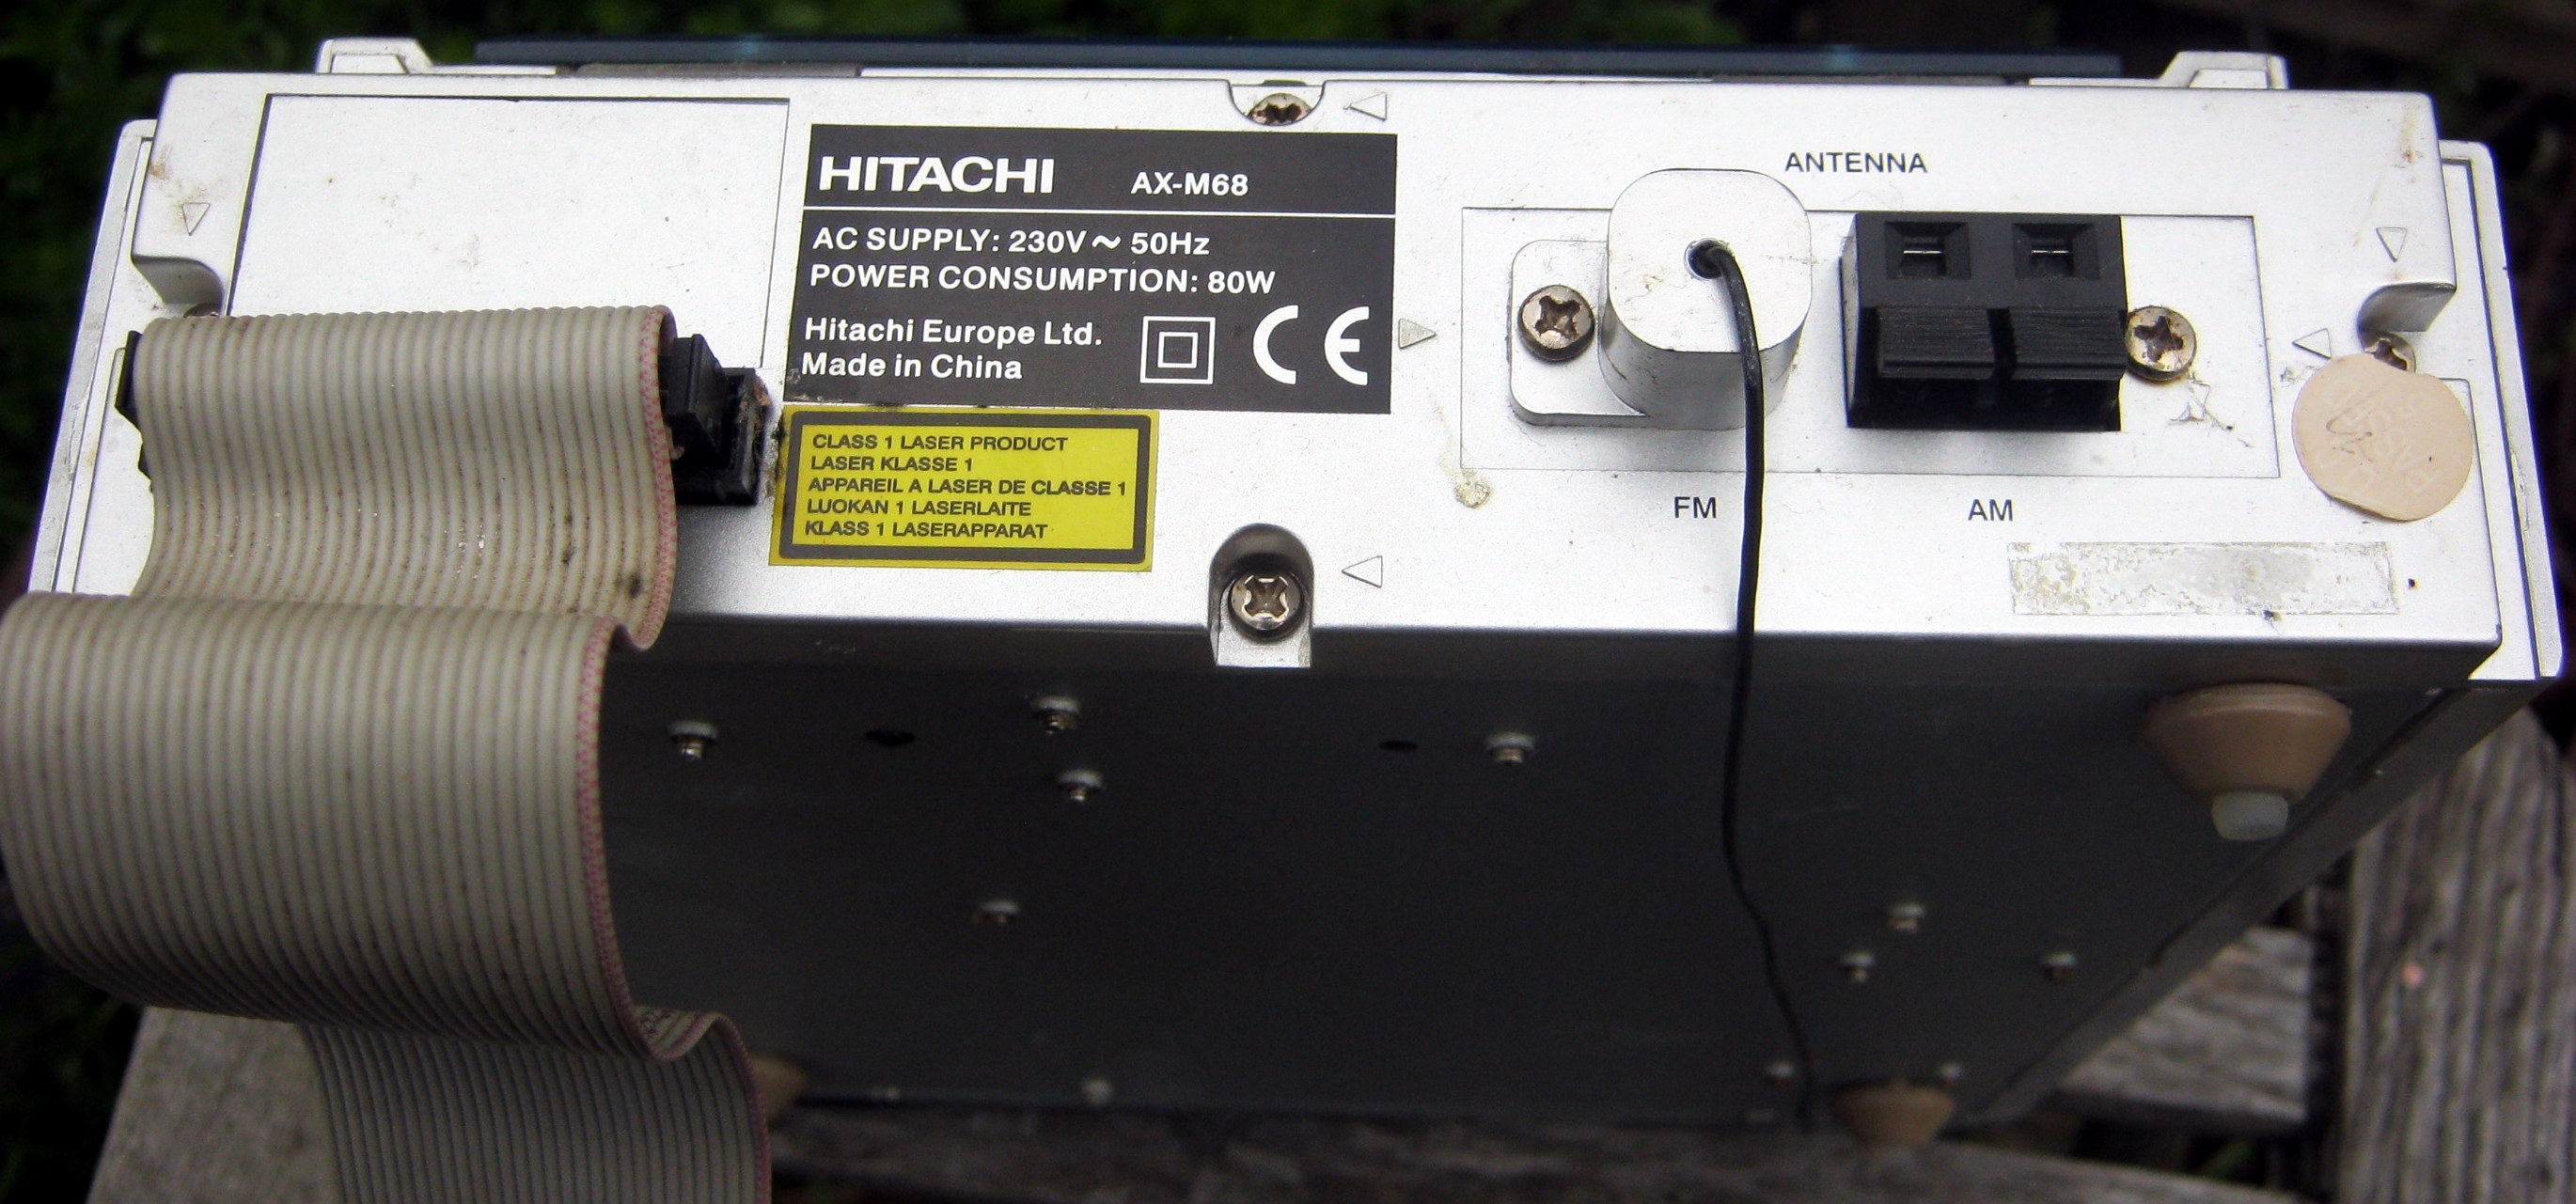 Hitachi AX-M68 Tuner/CD player rear